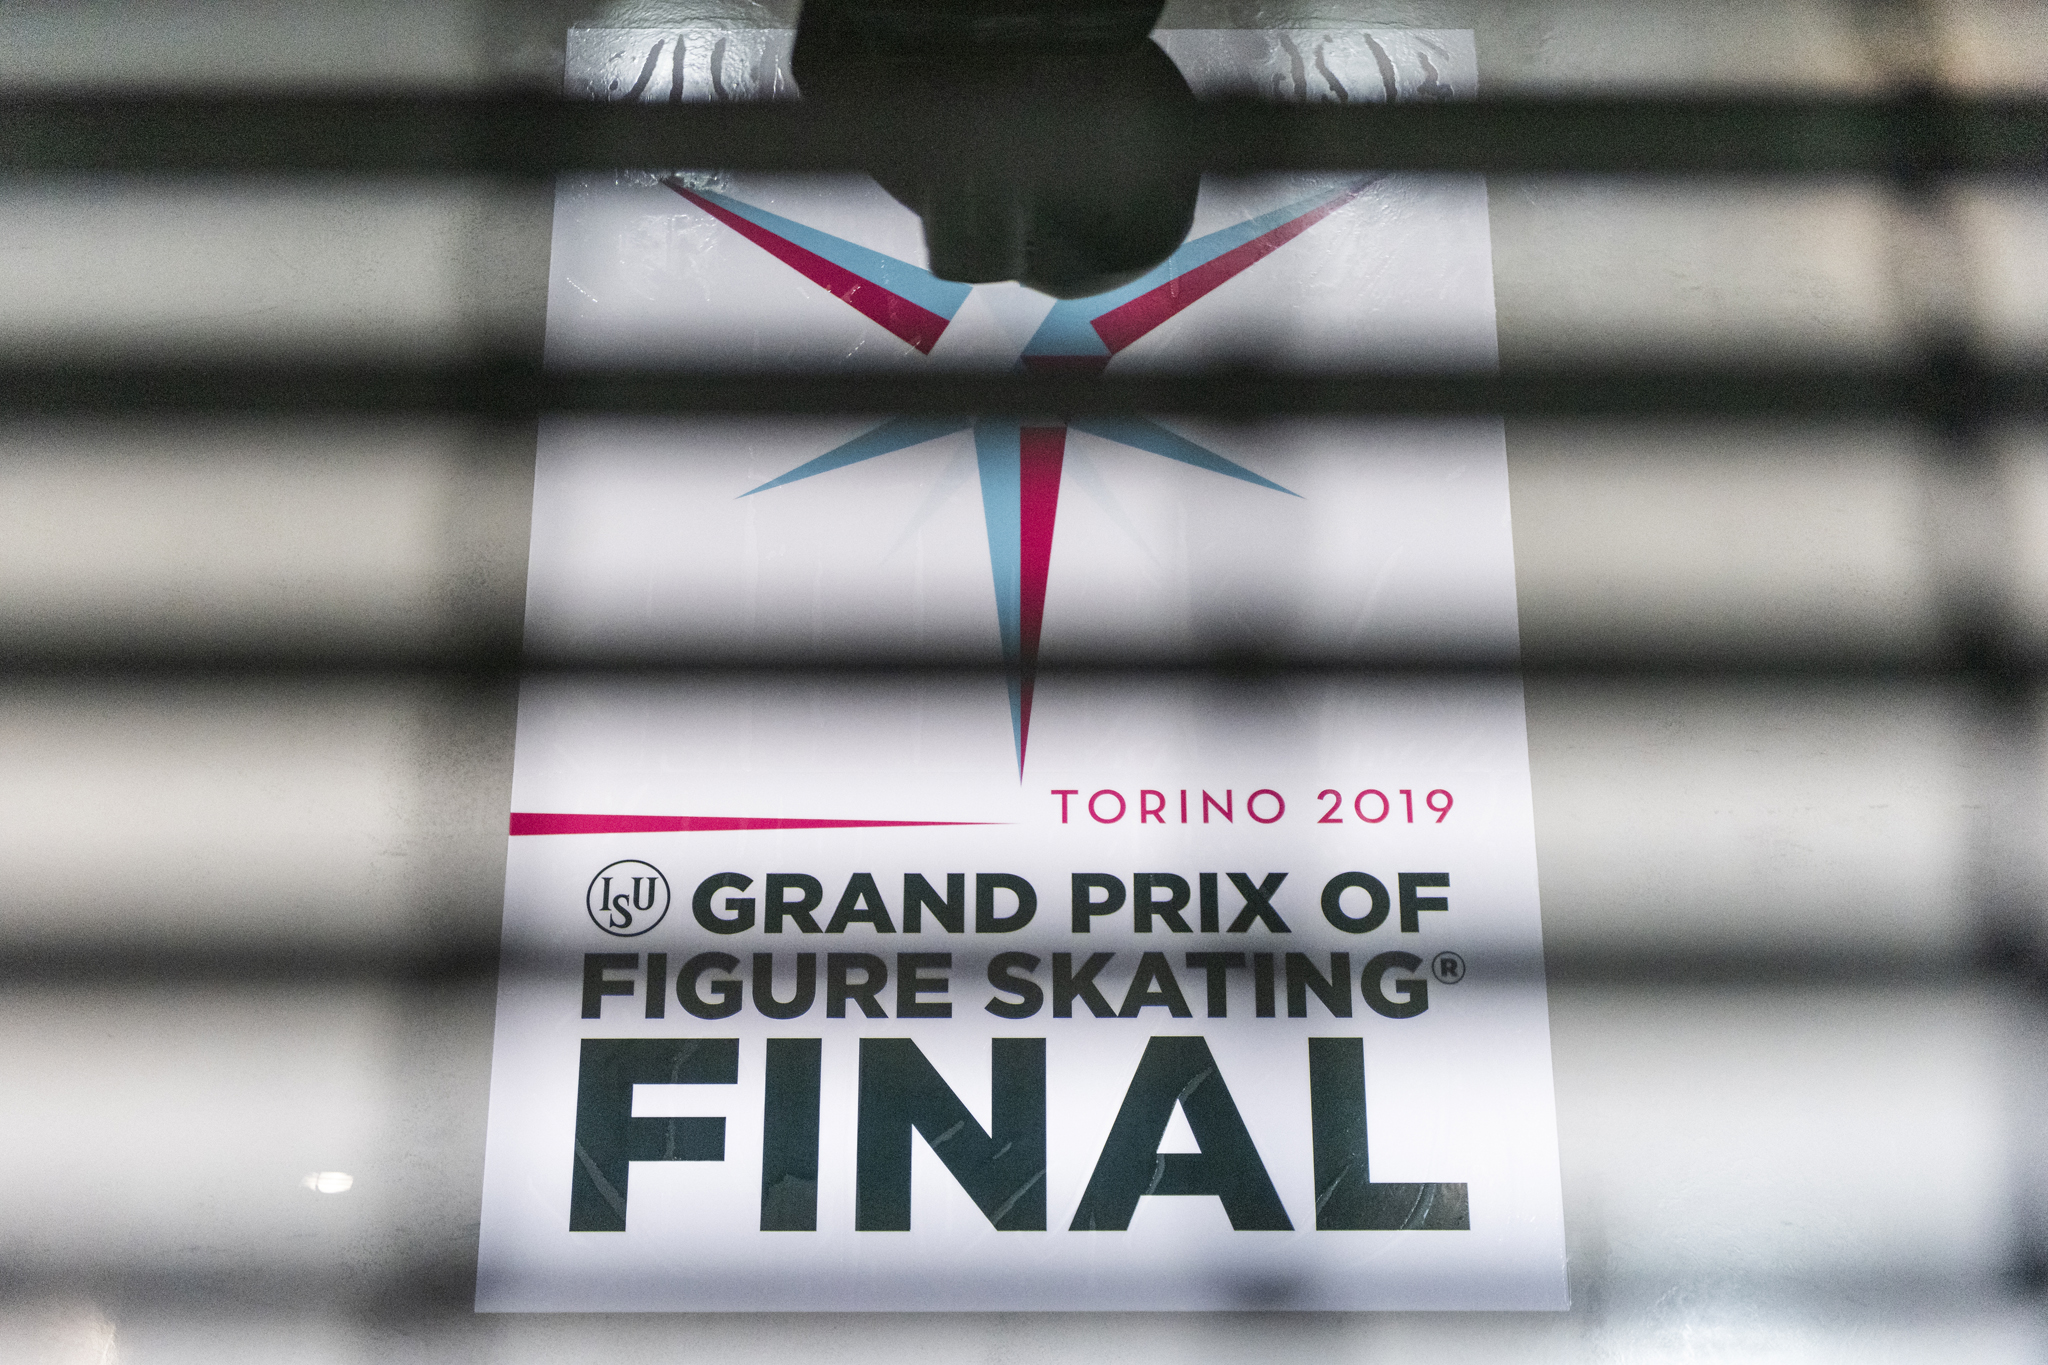 ISU Grand Prix of Figure Skating Final (Senior & Junior). Dec 05 - Dec 08, 2019.  Torino /ITA  - Страница 2 EKoD7VOXYAAJC9D?format=jpg&name=4096x4096